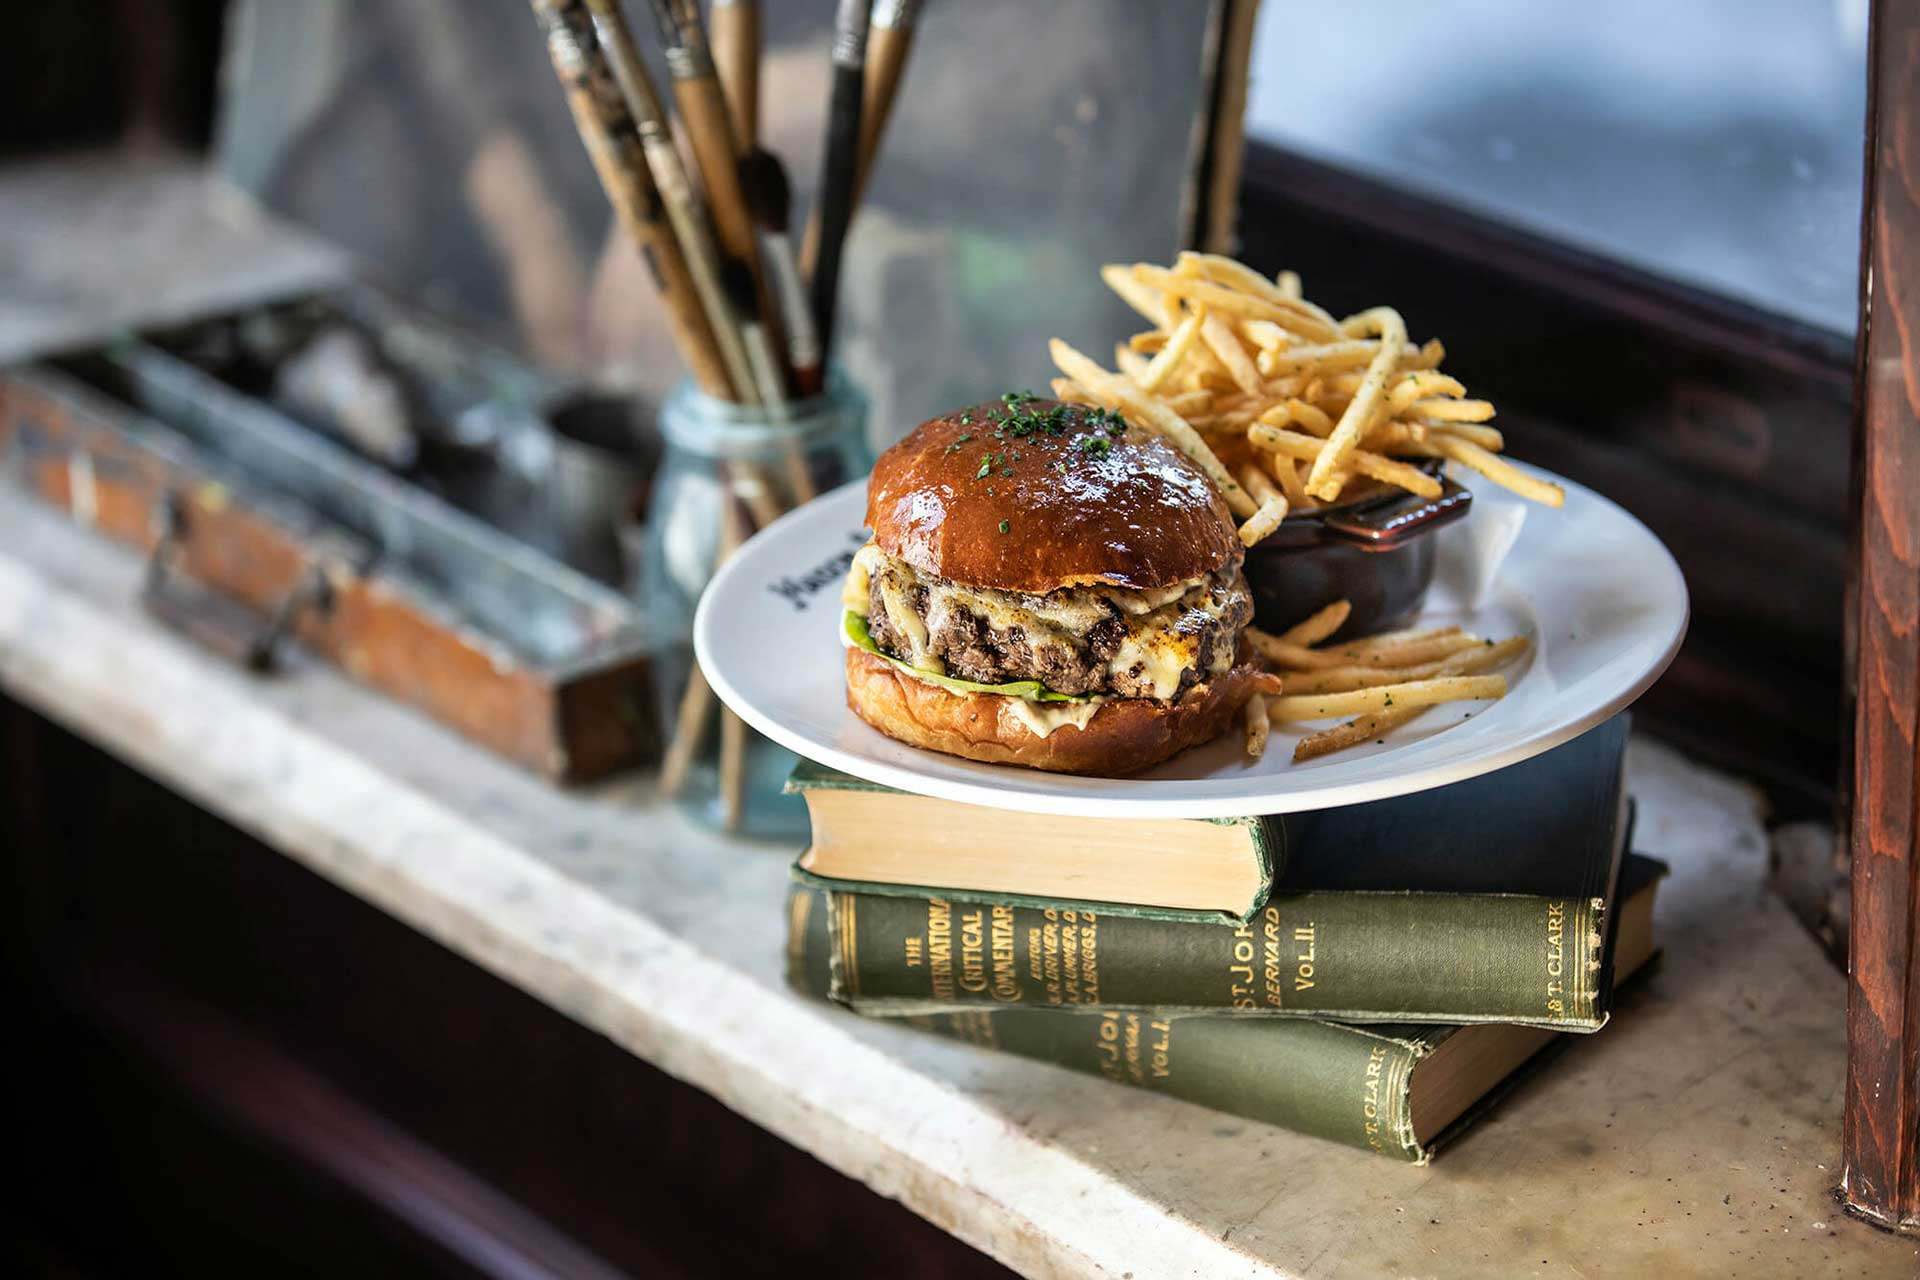 Maison Selby French Onion Burger with fries sitting on a stack of books